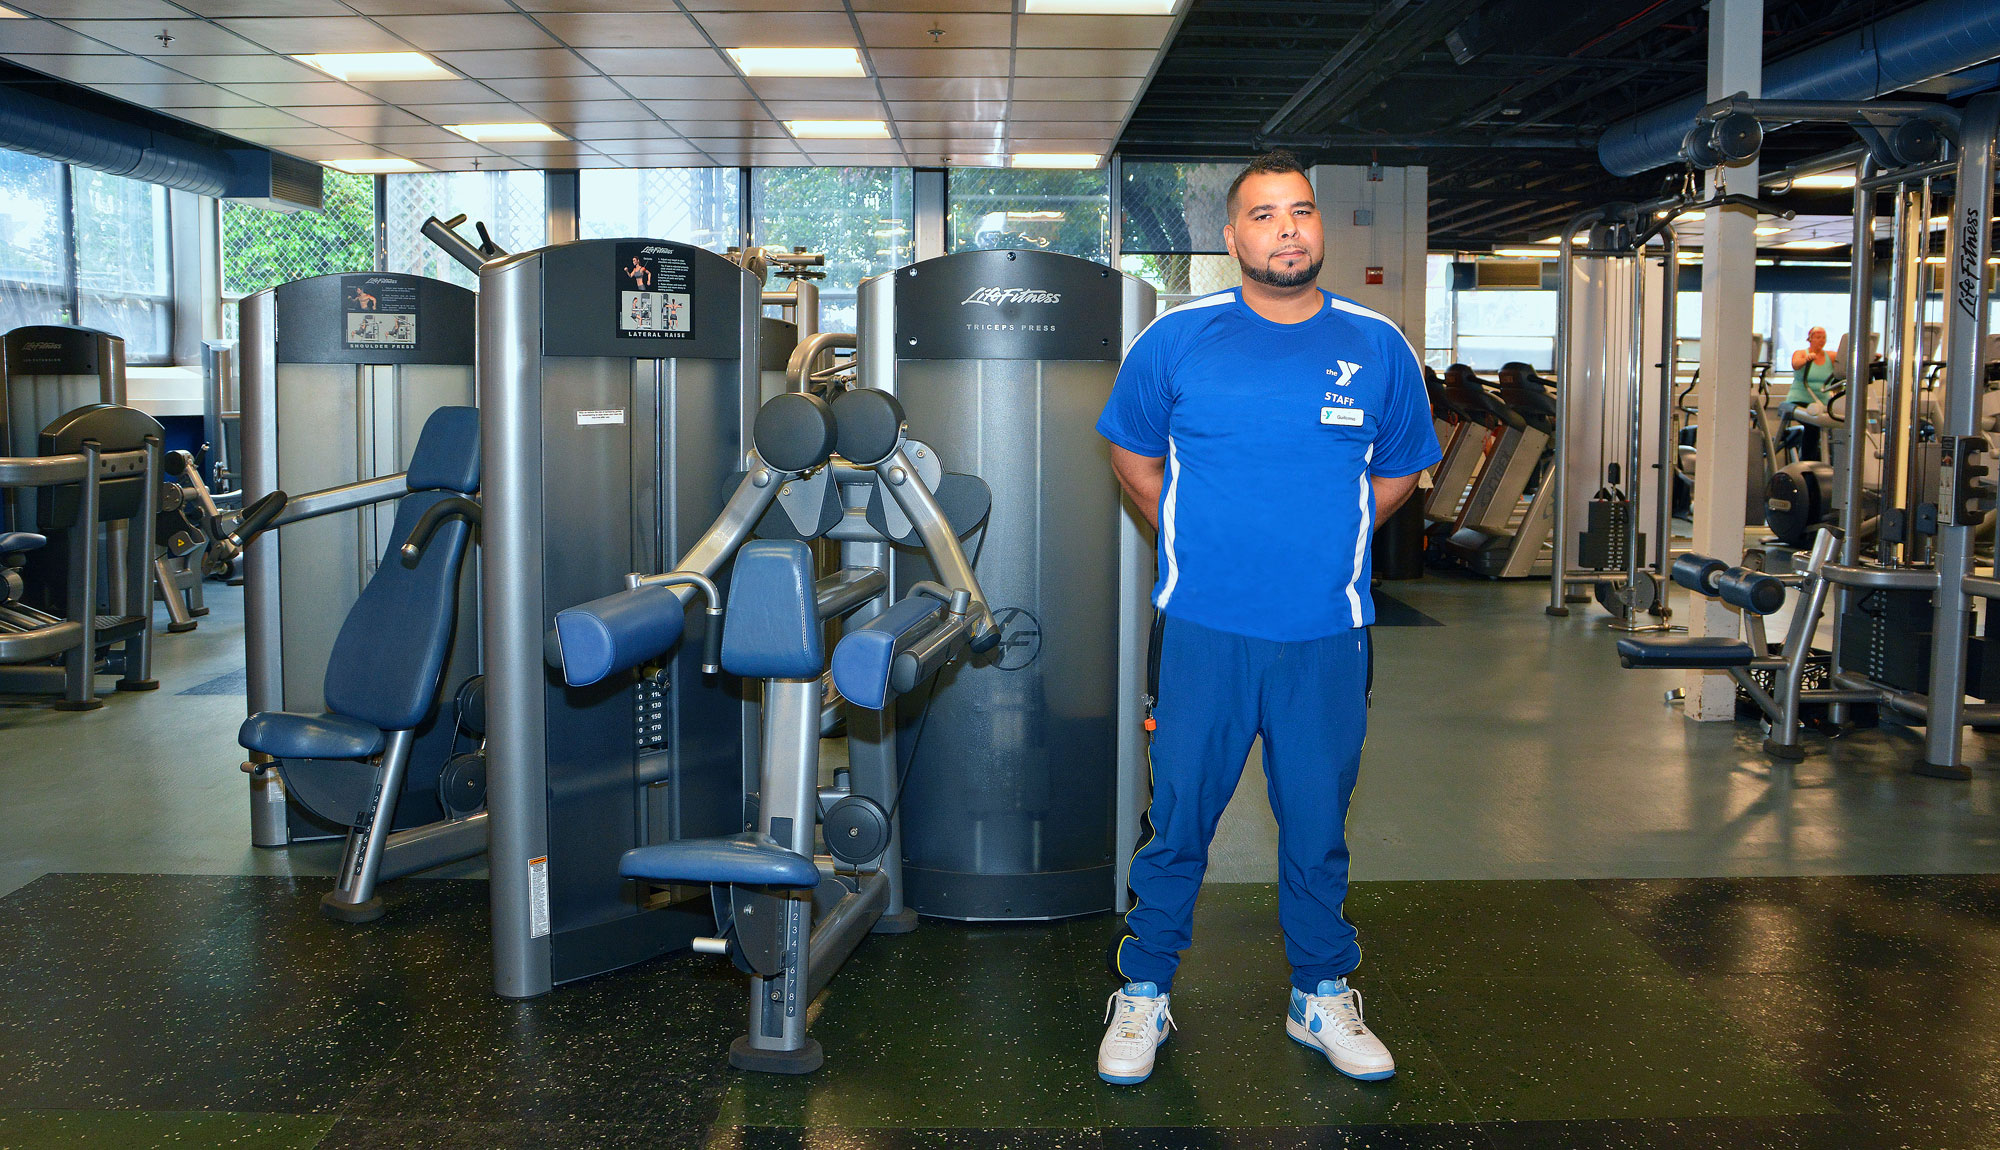 Guillermo Perez is an MTTI Graduate and Fitness Trainer at Cranston Y.